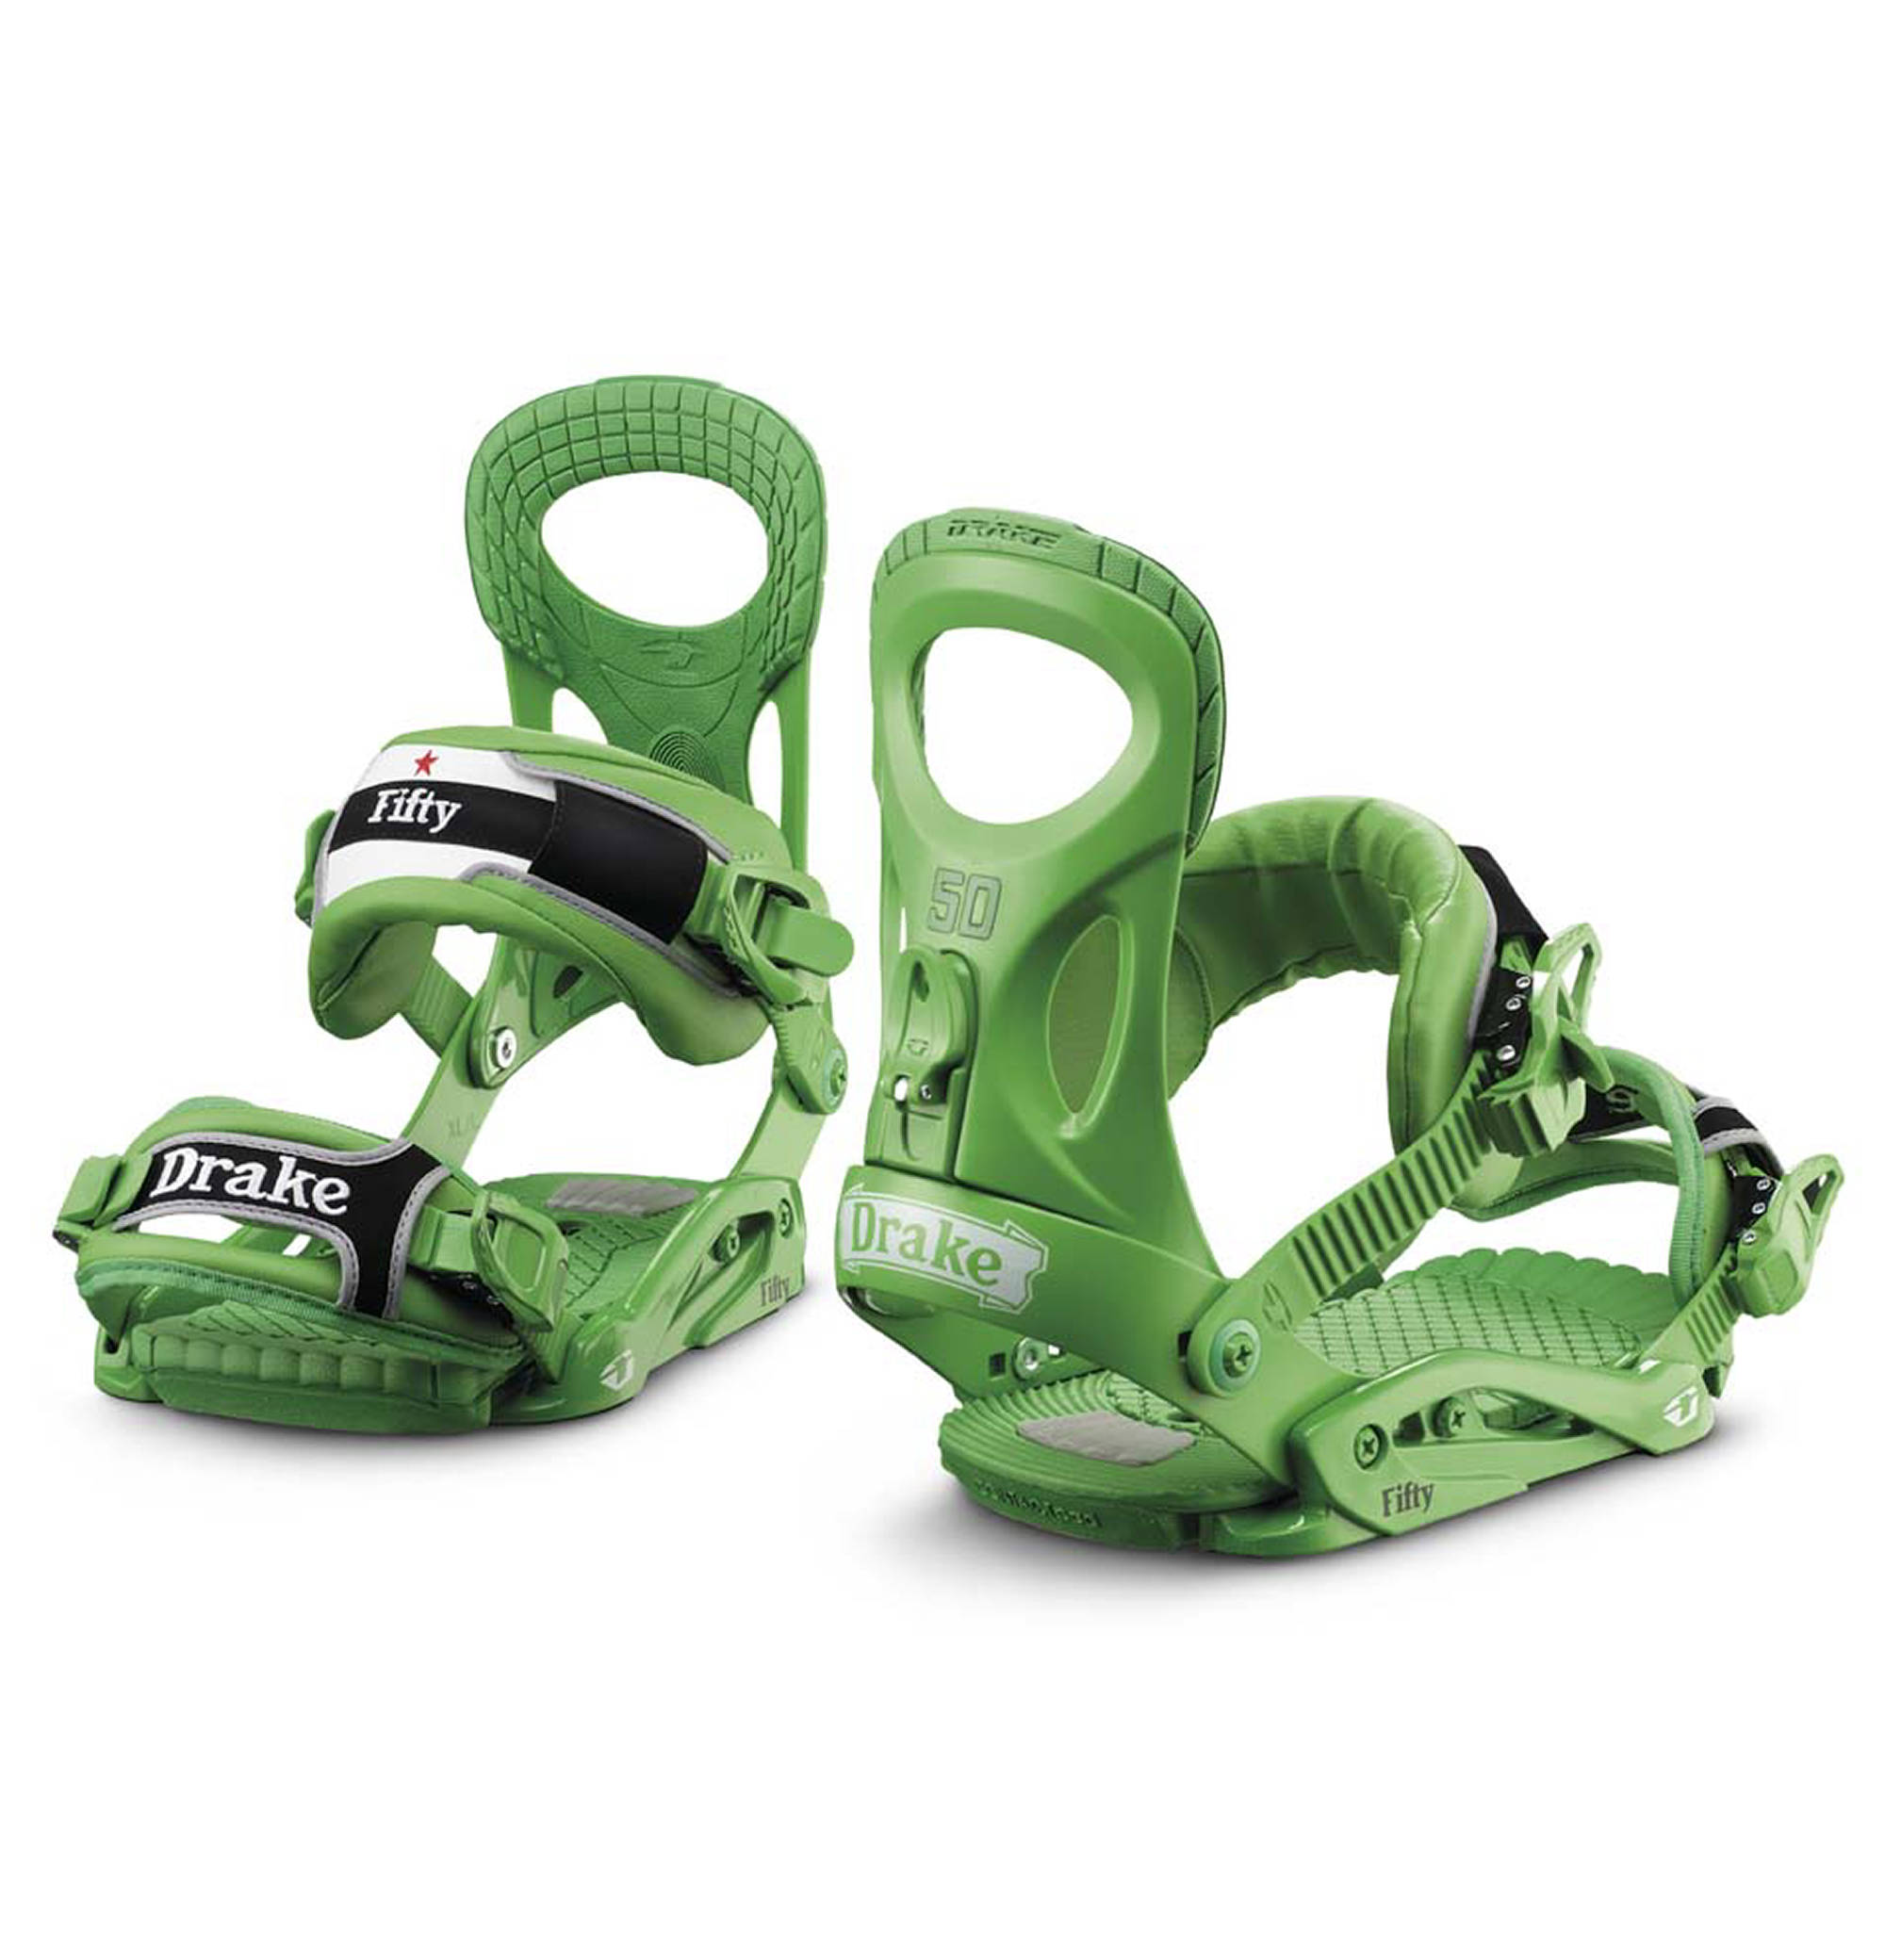 Drake Fifty Snowboard Bindings In Green